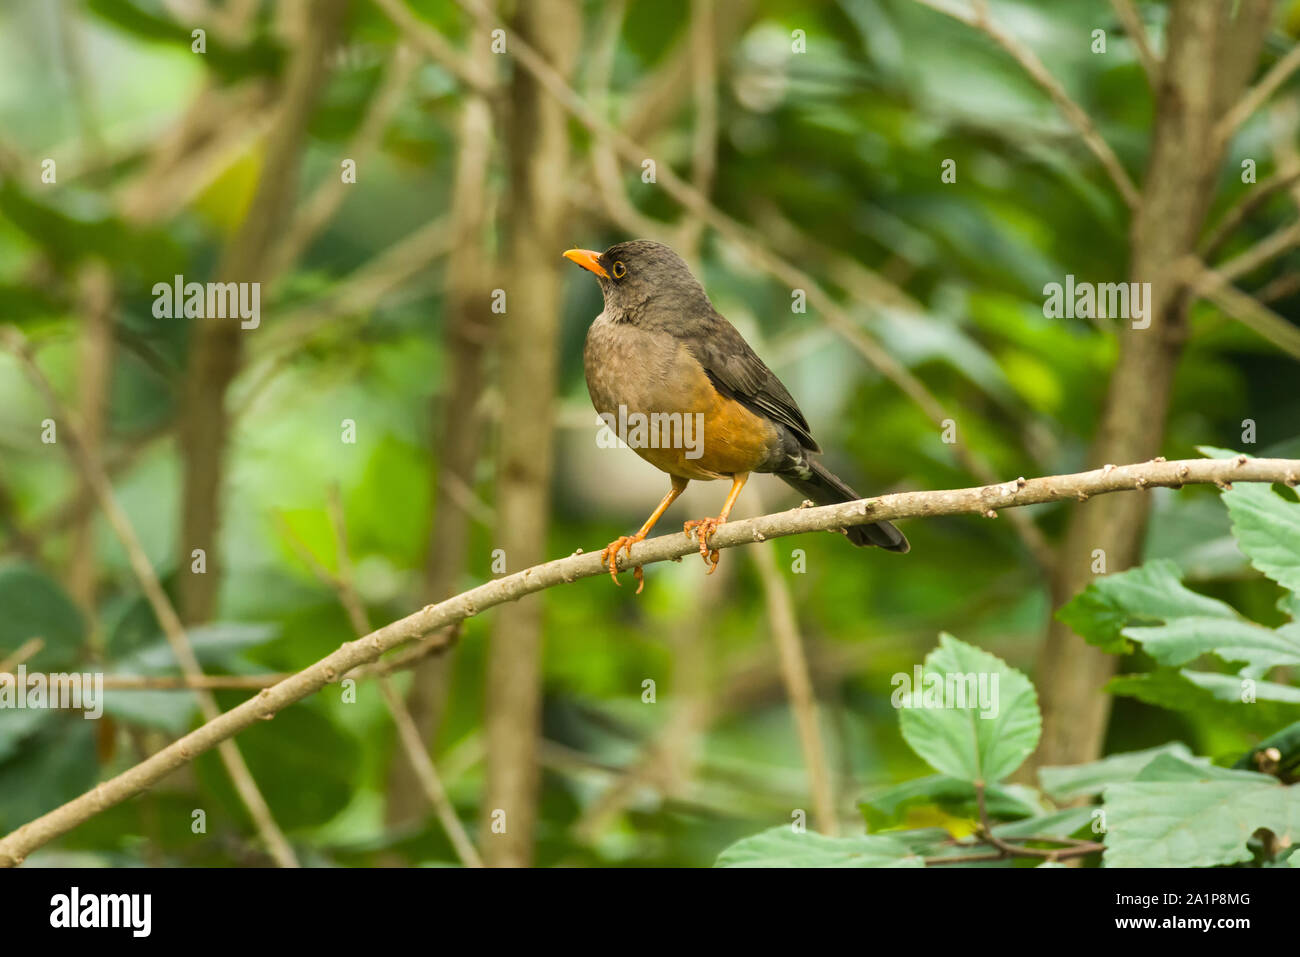 Olive Thrush (Turdus olivaceus) on branch, Kenya Stock Photo